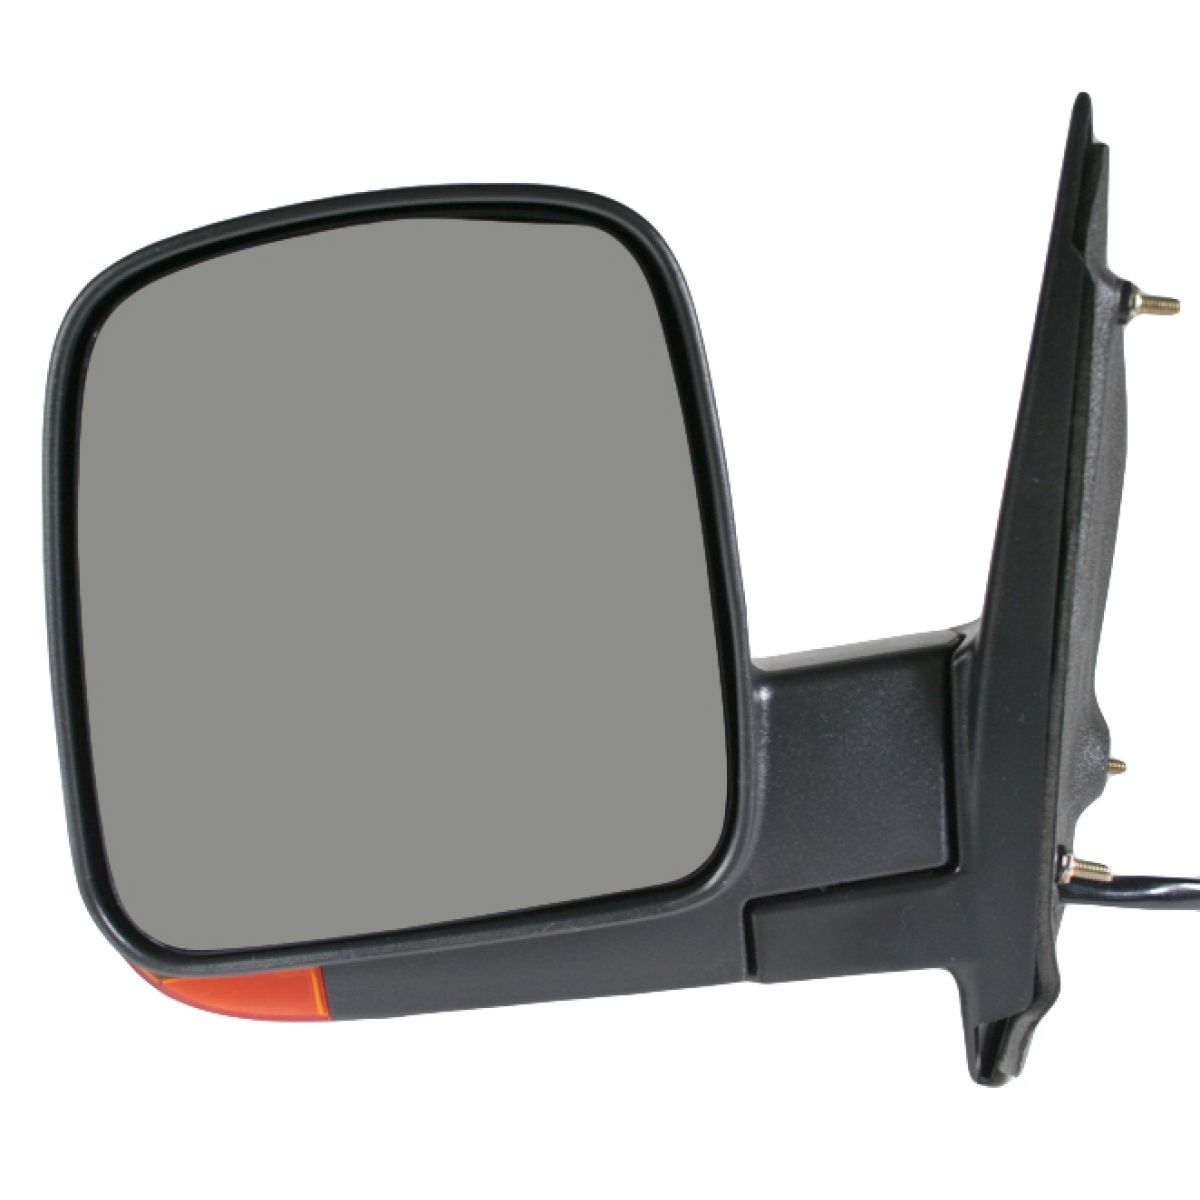 03-07 Chevy Express Van Power Heated Folding Rear View Mirror Left Driver Side L